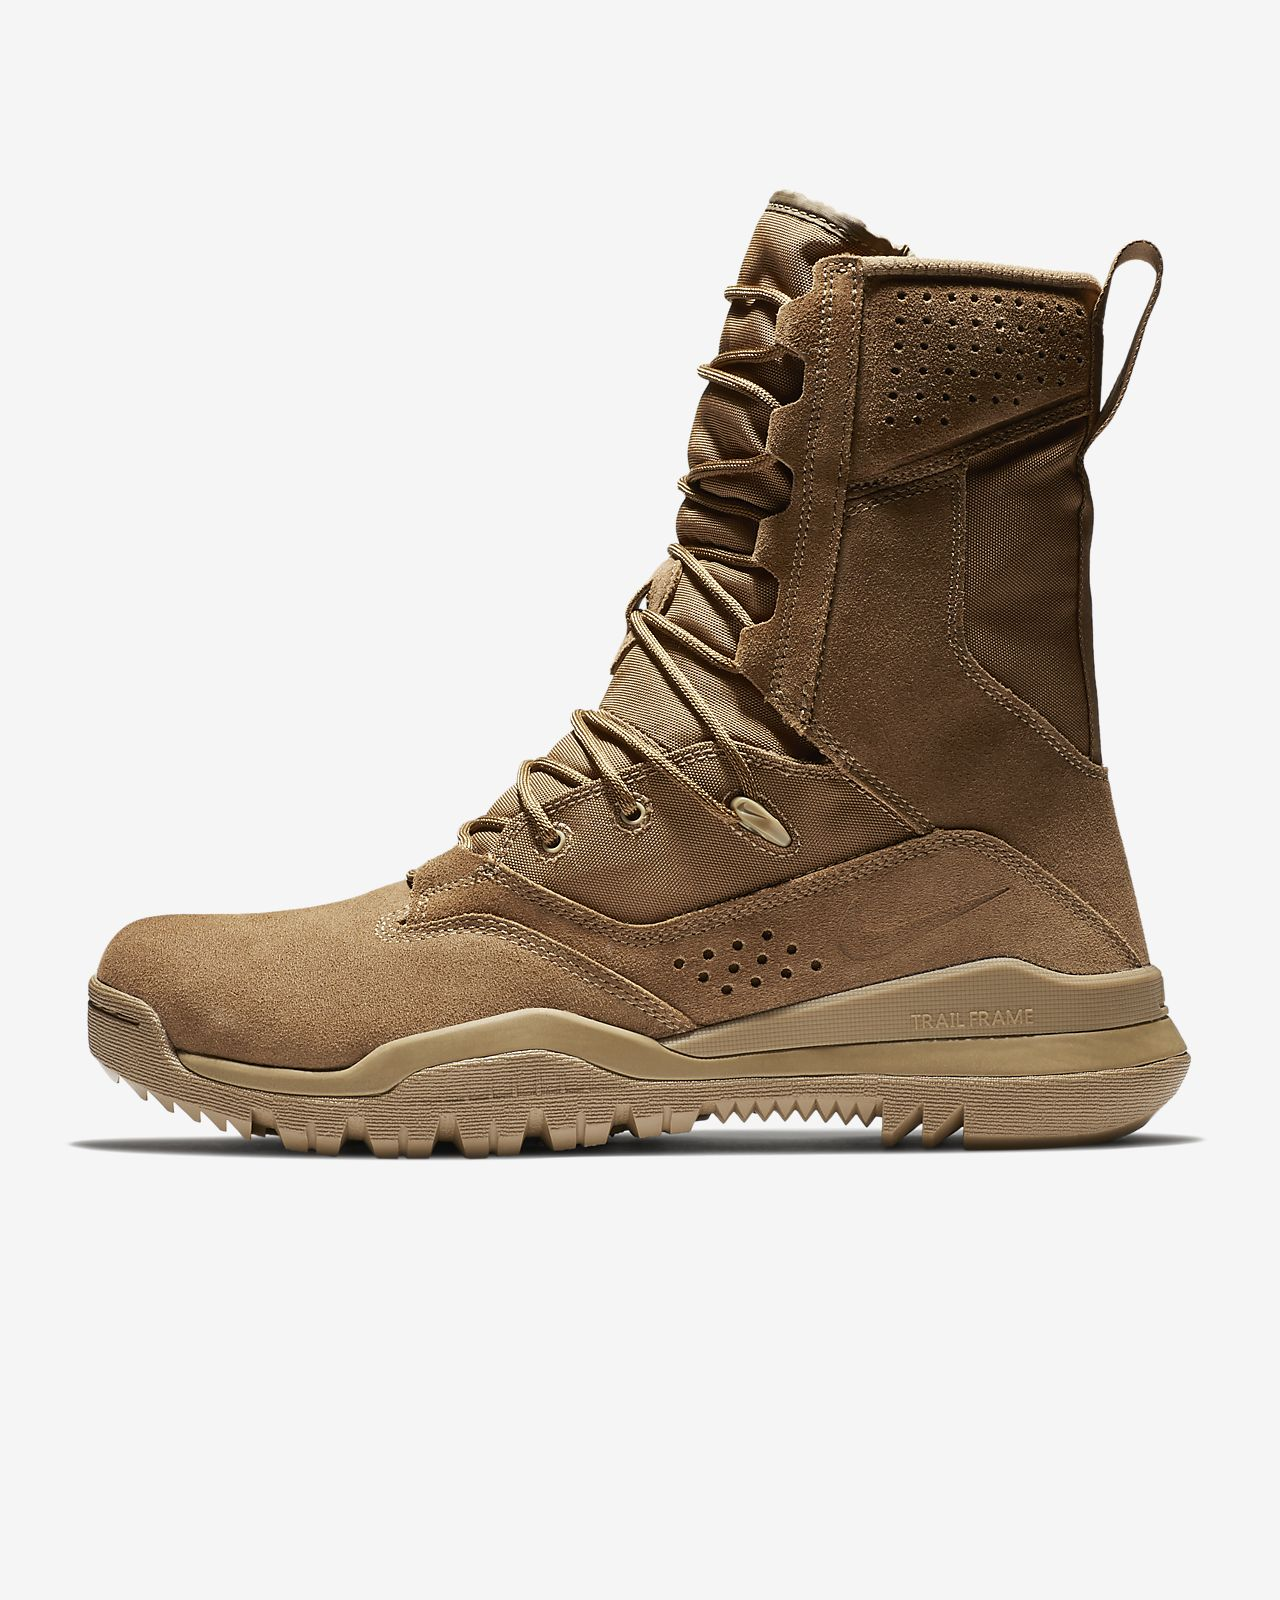 Nike SFB Field 2 20 cm Leather Boots